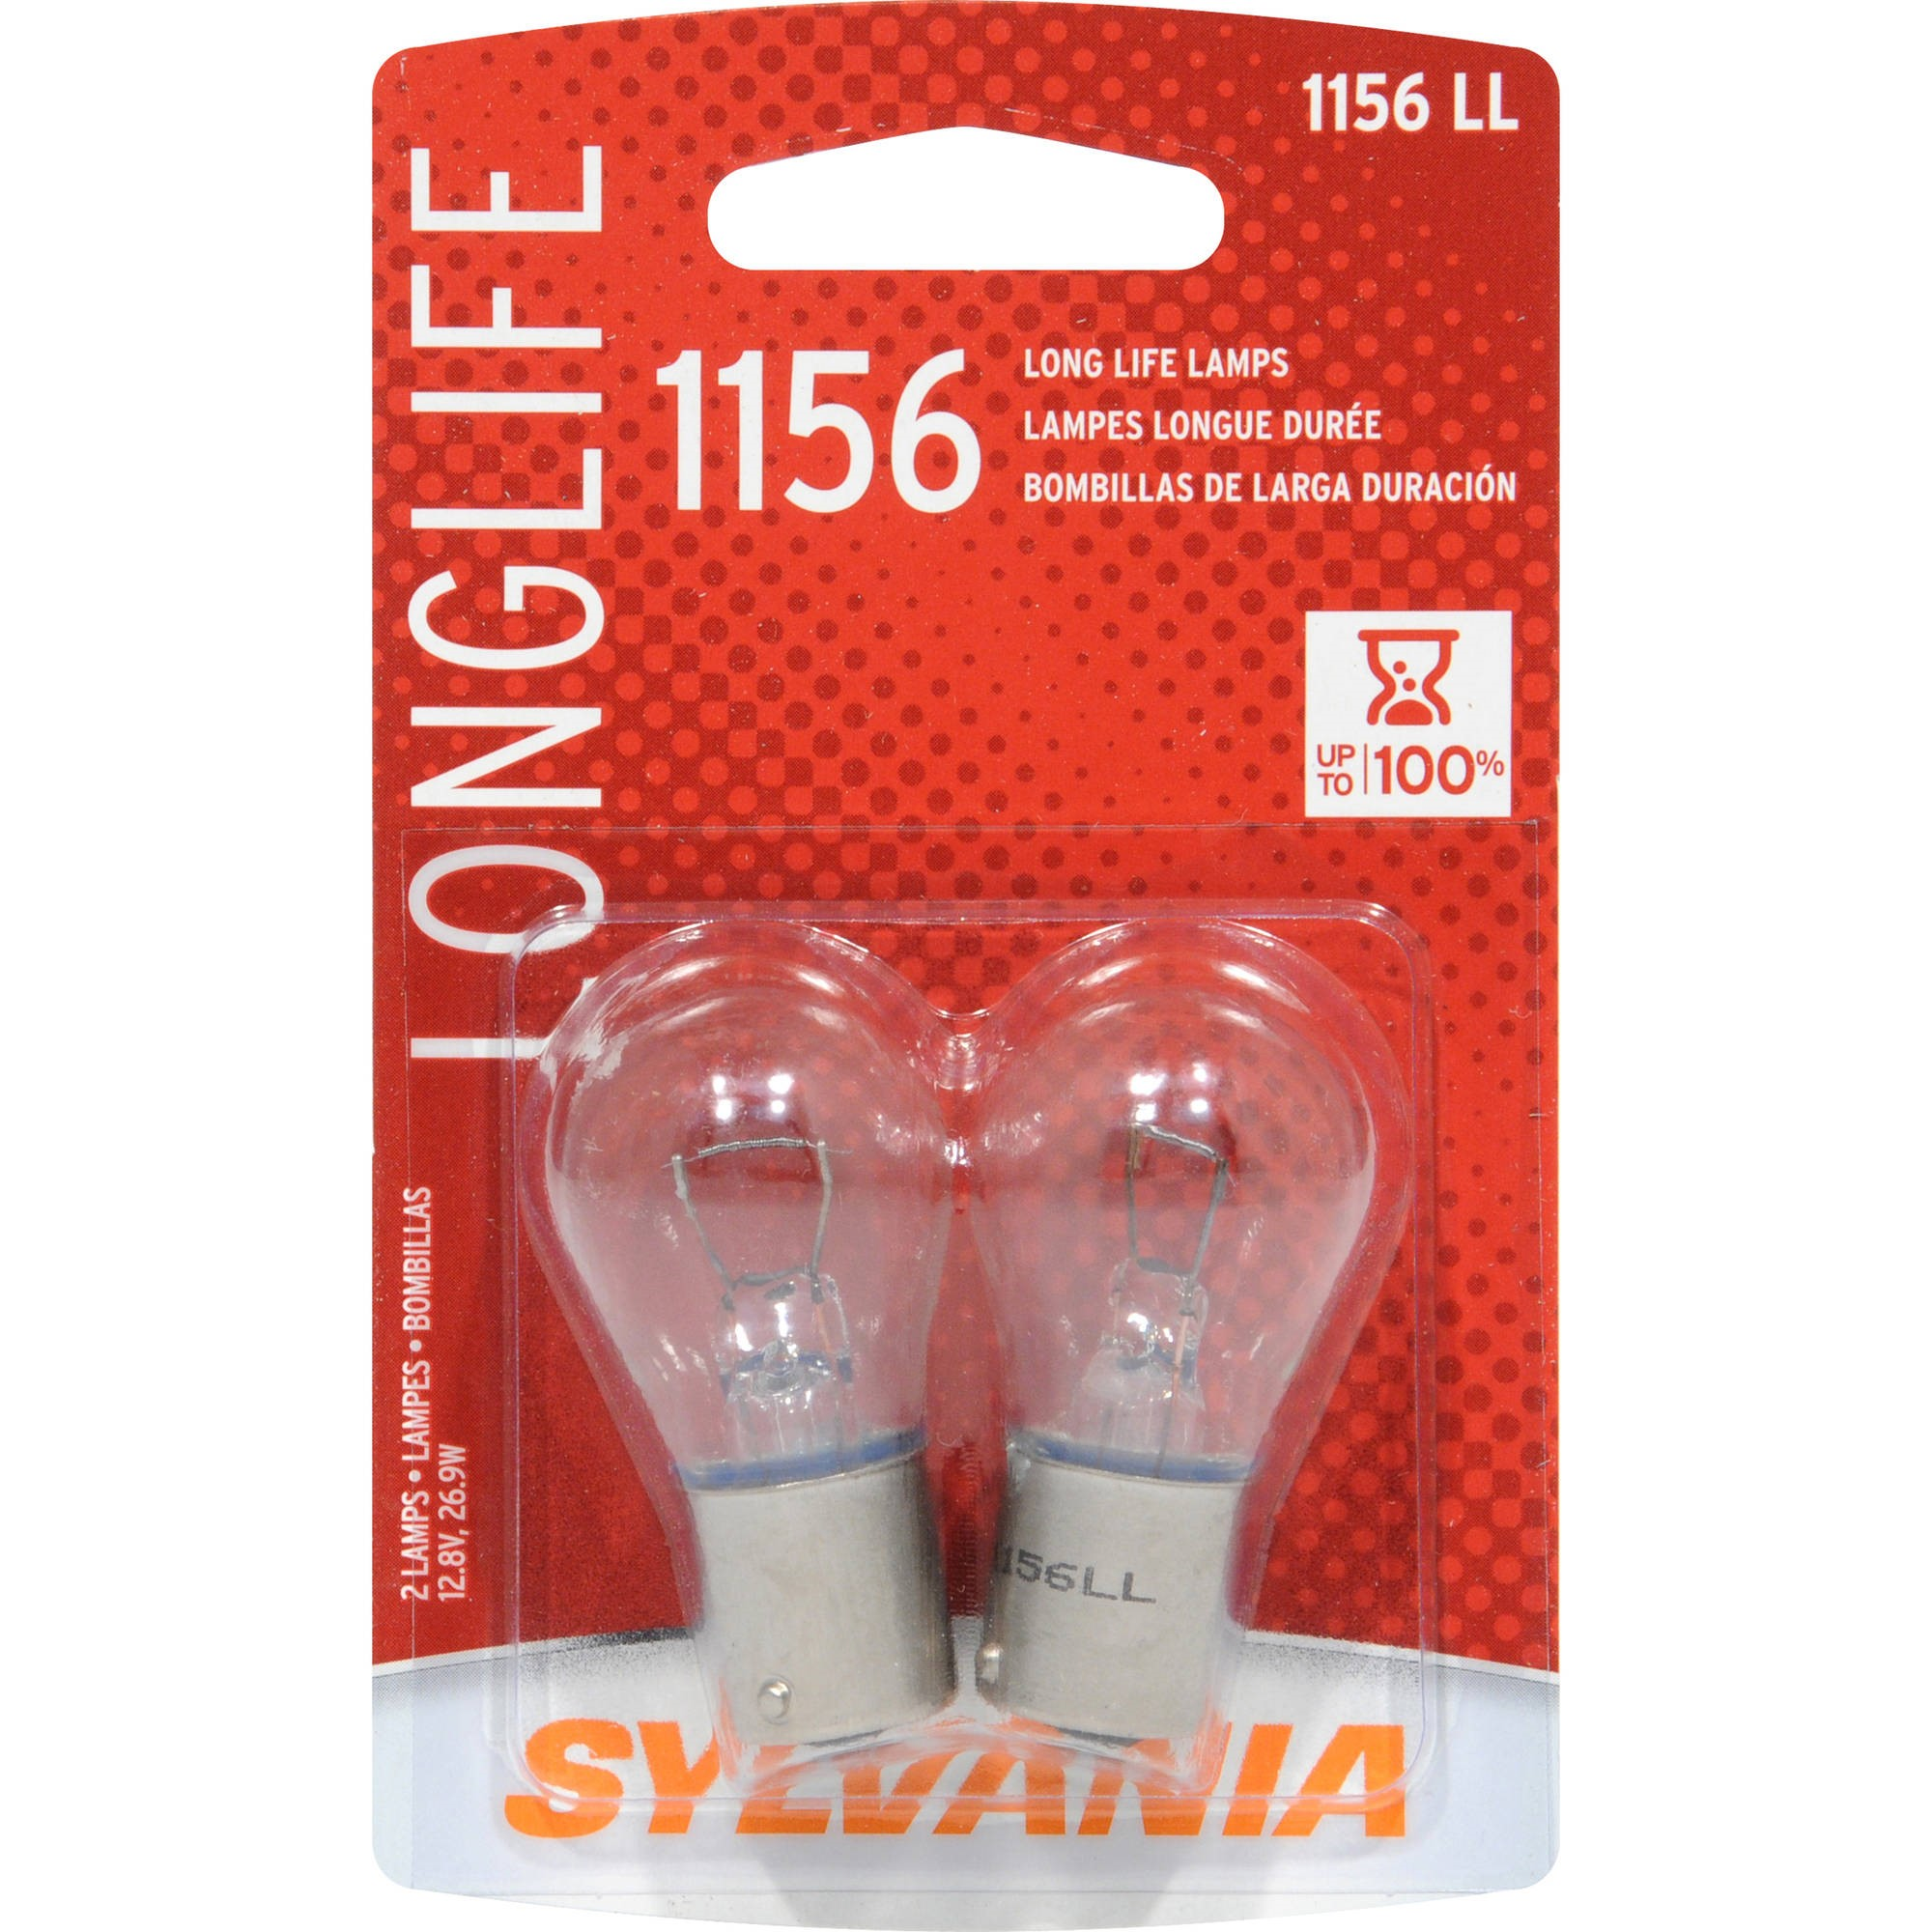 SYLVANIA 1156 Long Life Miniature Bulb, (Contains 2 Bulbs)